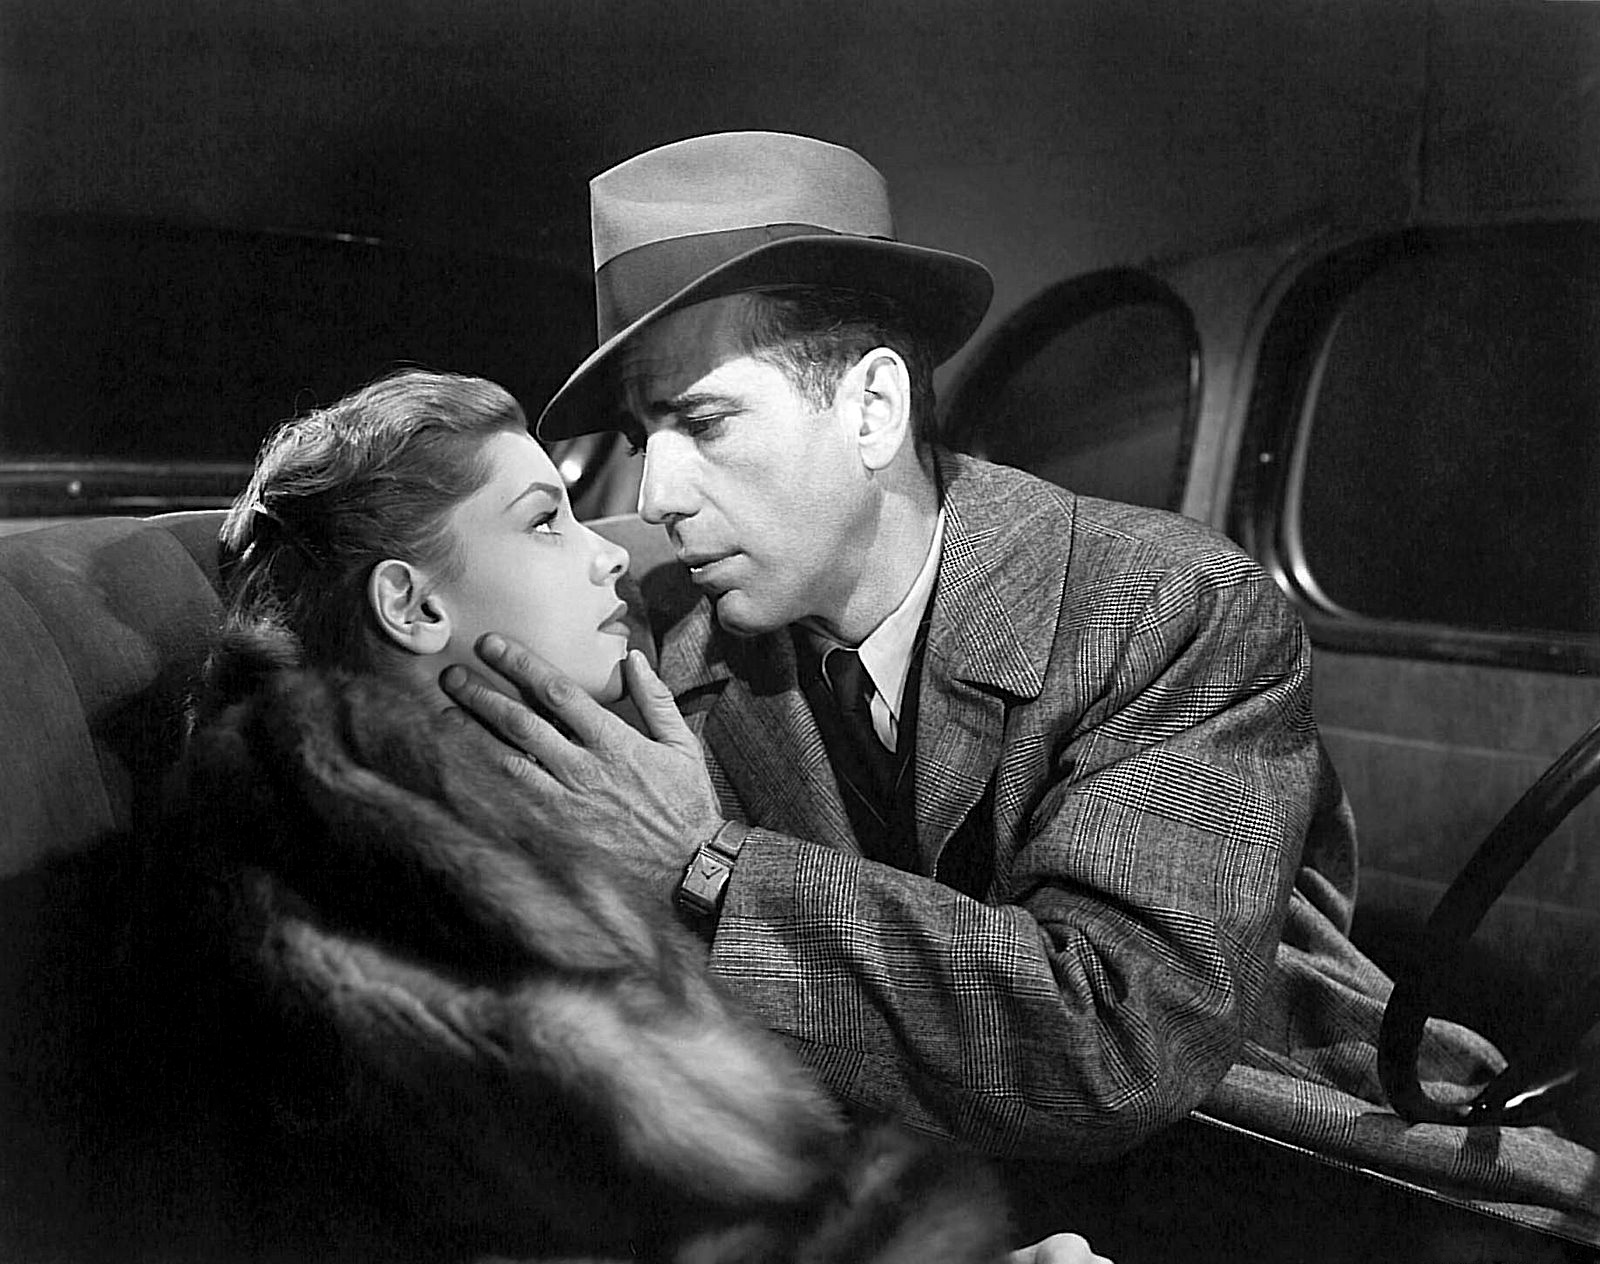 film noir essay film noir essay questions noir double indemnity  the big sleep and genre academic movie fail the big sleep and genre neither here noir essay users and losers of film